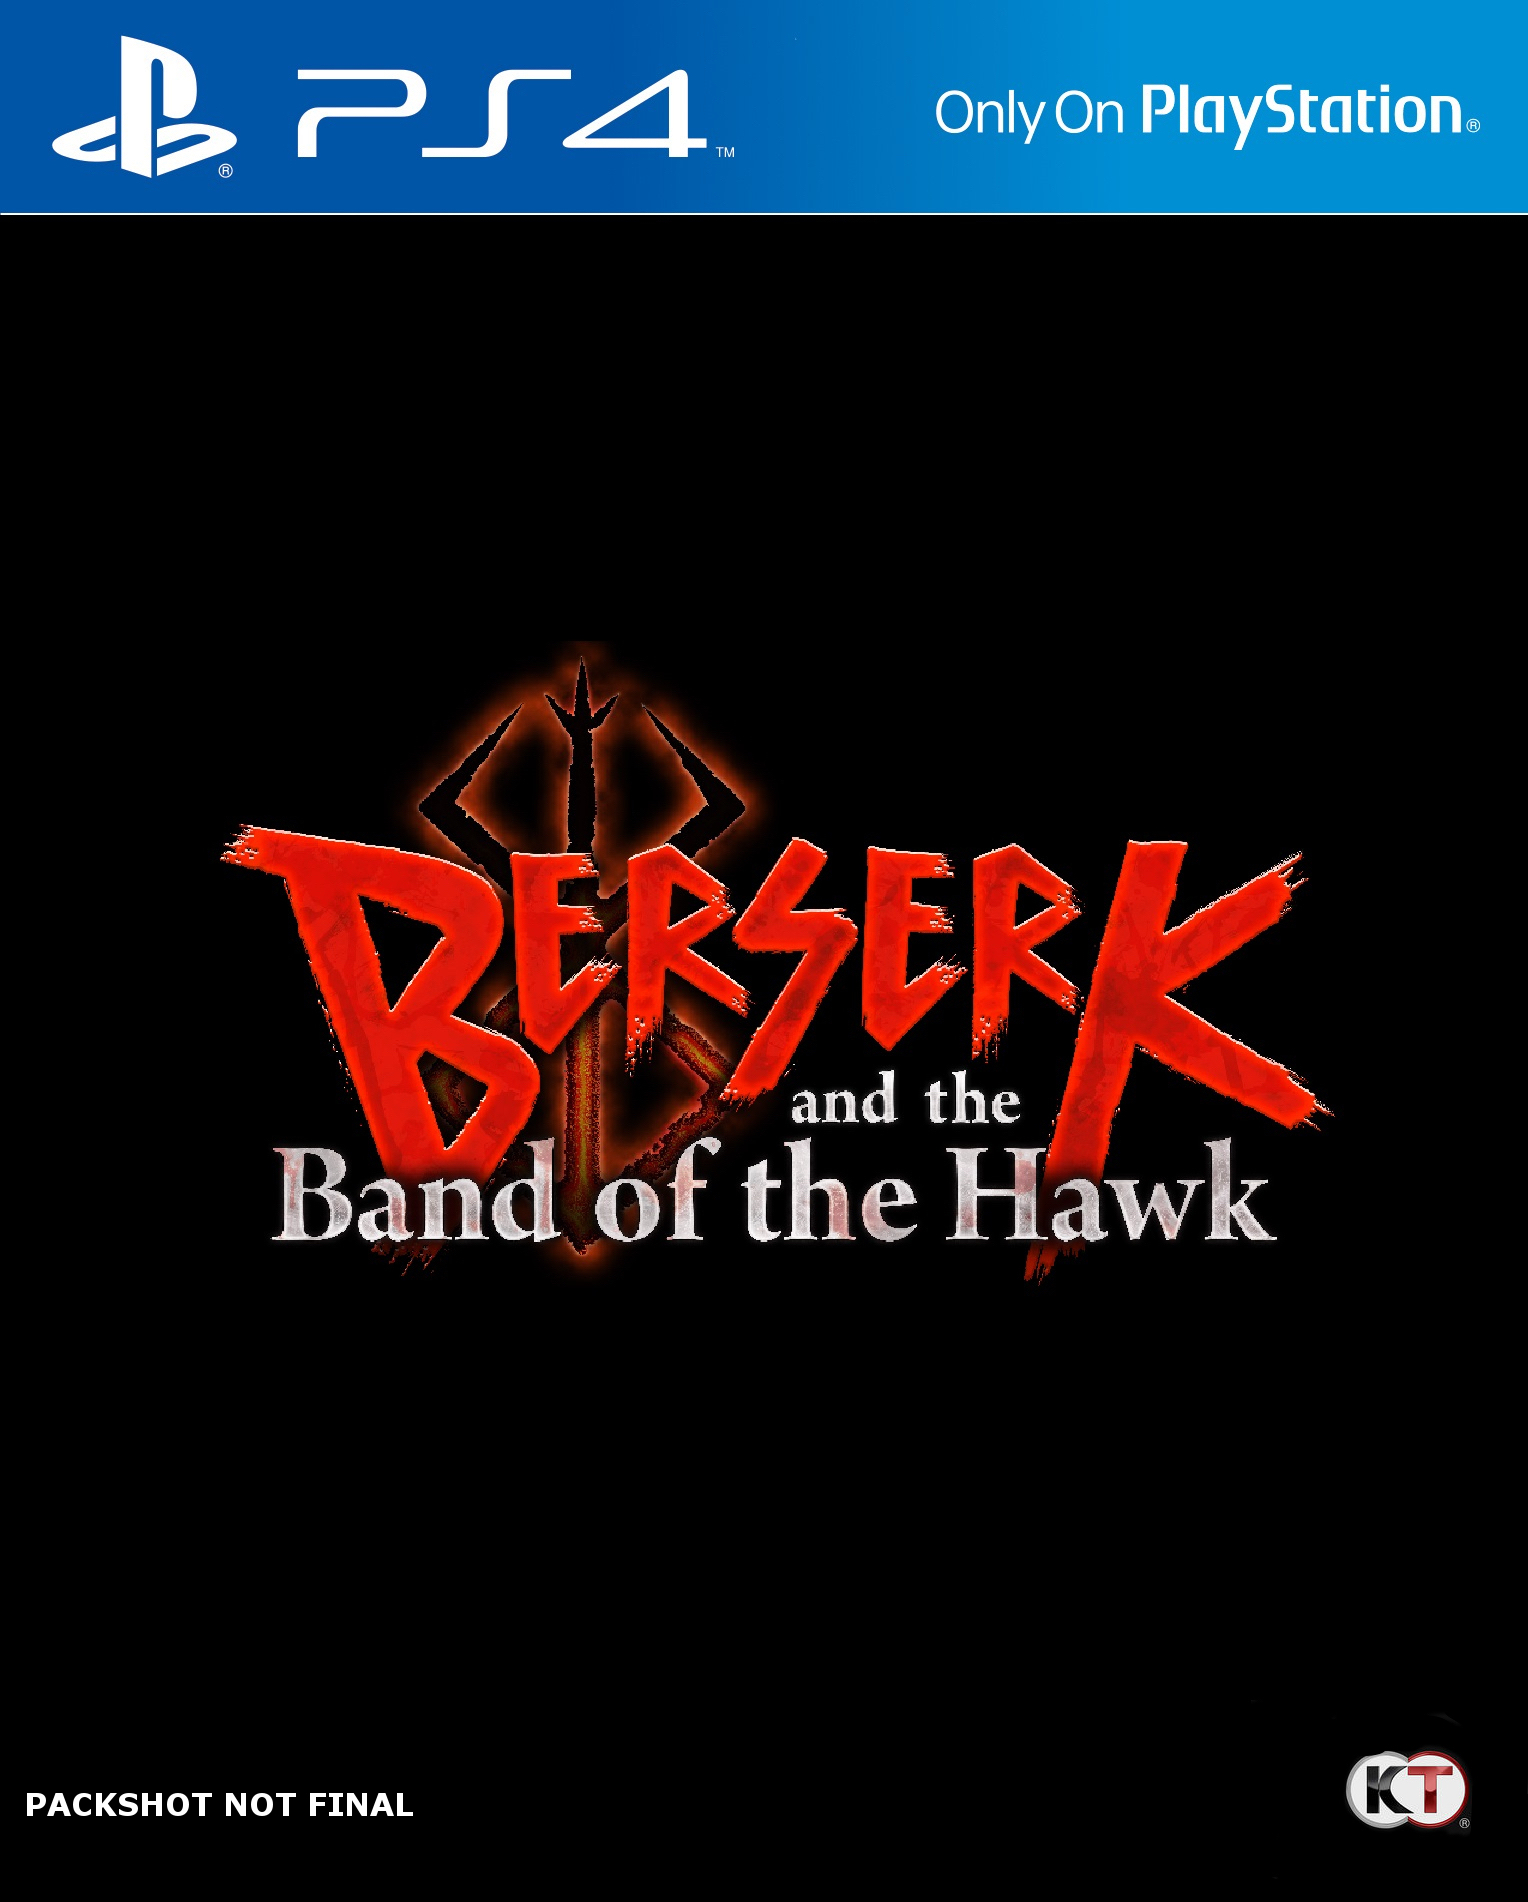 Box art - Berserk and the Band of the Hawk